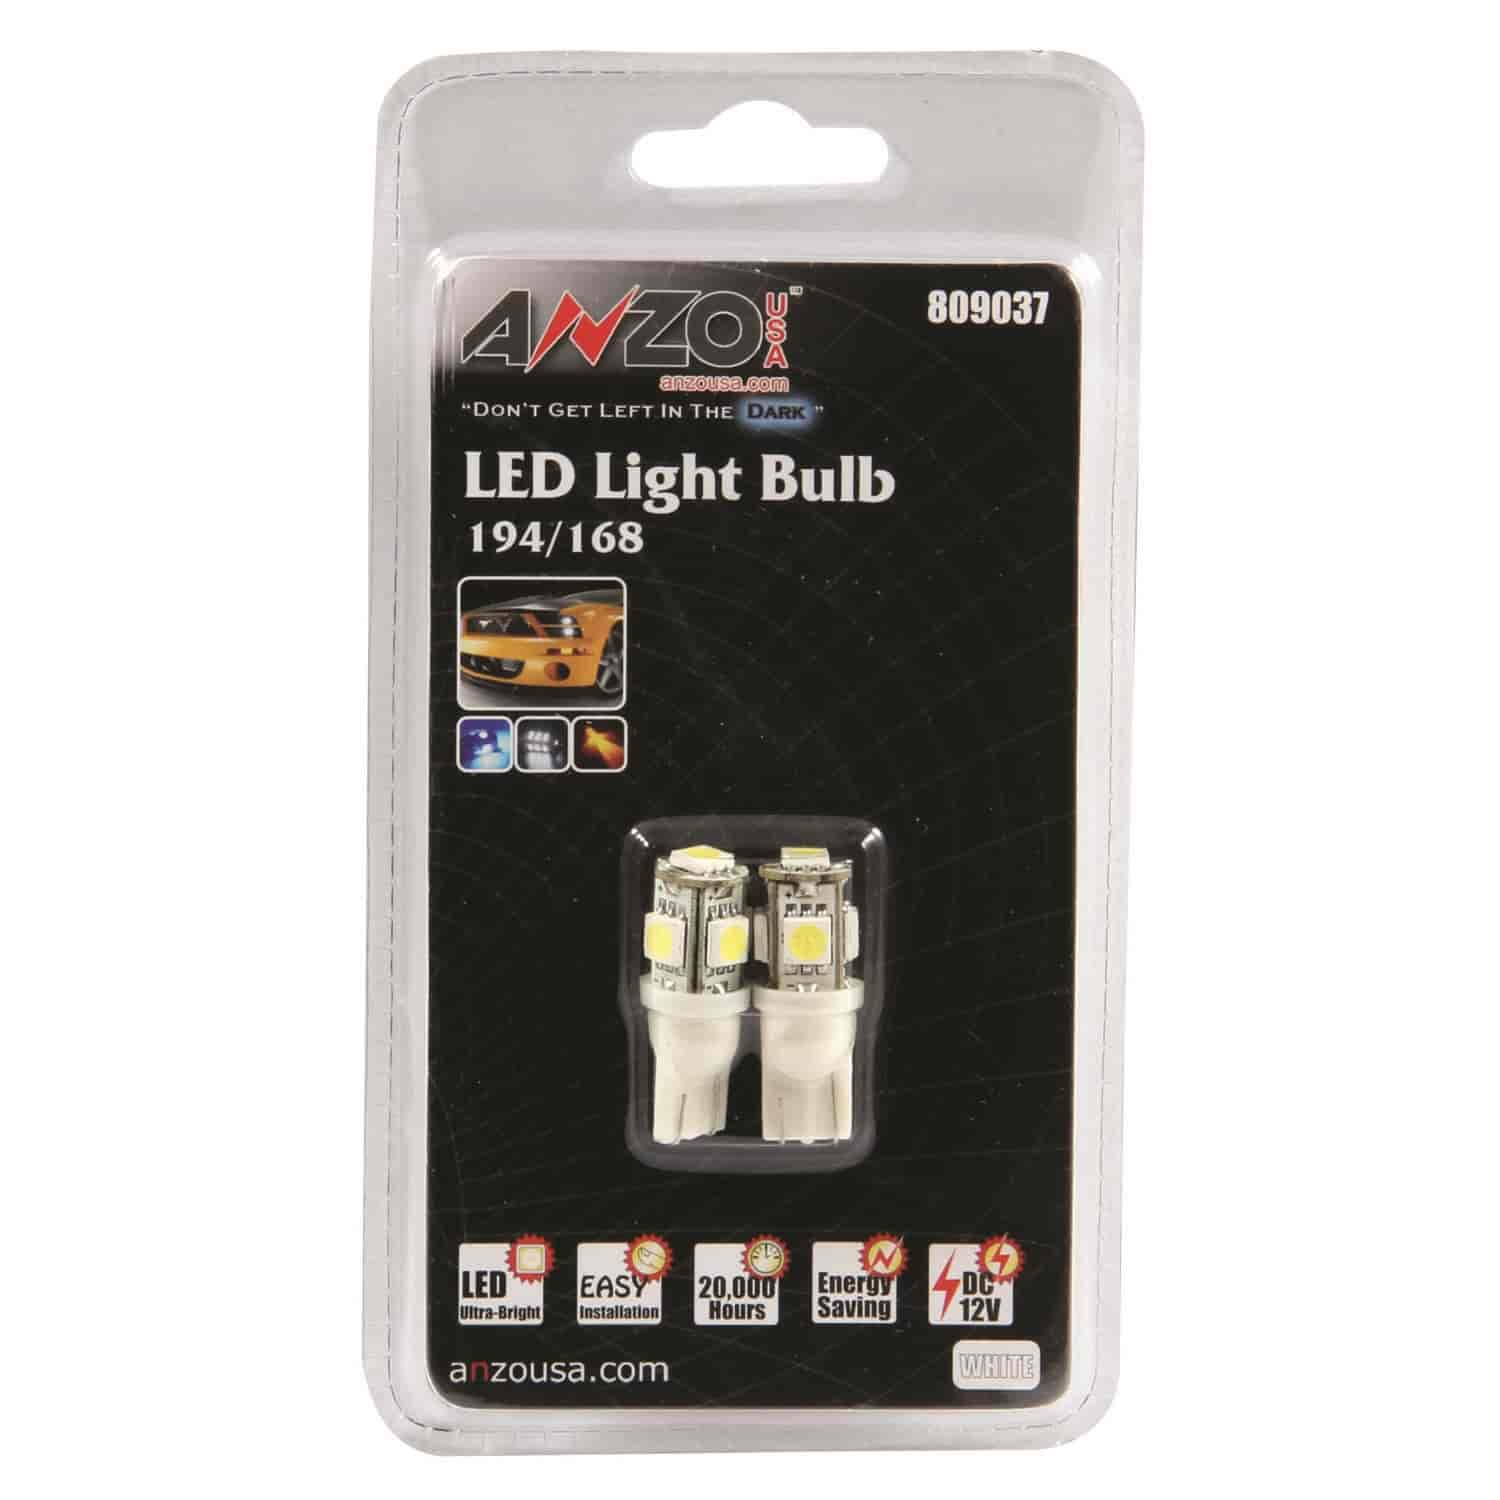 Anzo 809037 - Anzo LED Universal Light Bulbs